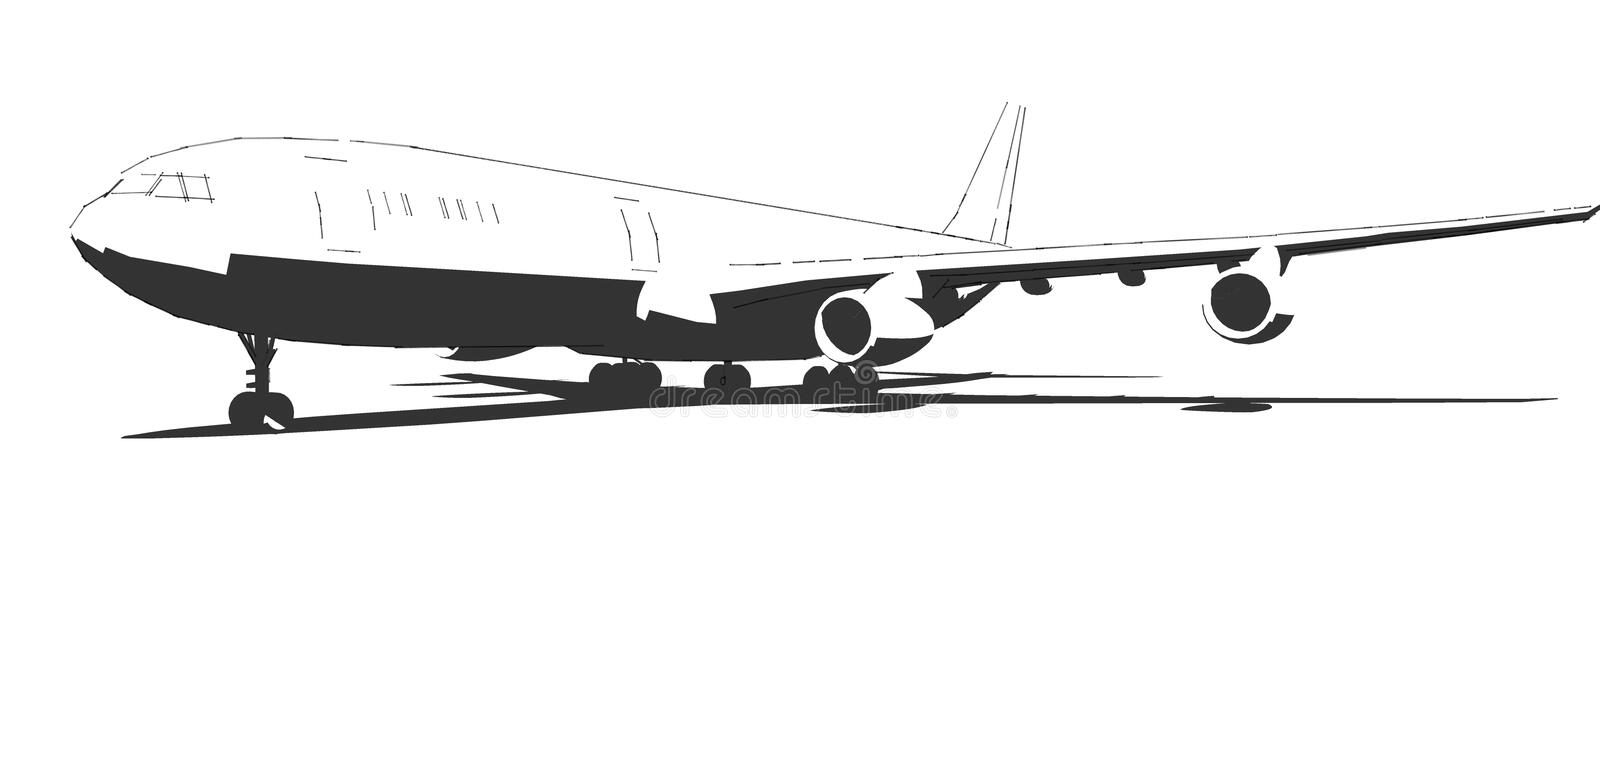 The aircraft, black and white drawing done in ink. Airplane - -ink-black and white royalty free illustration